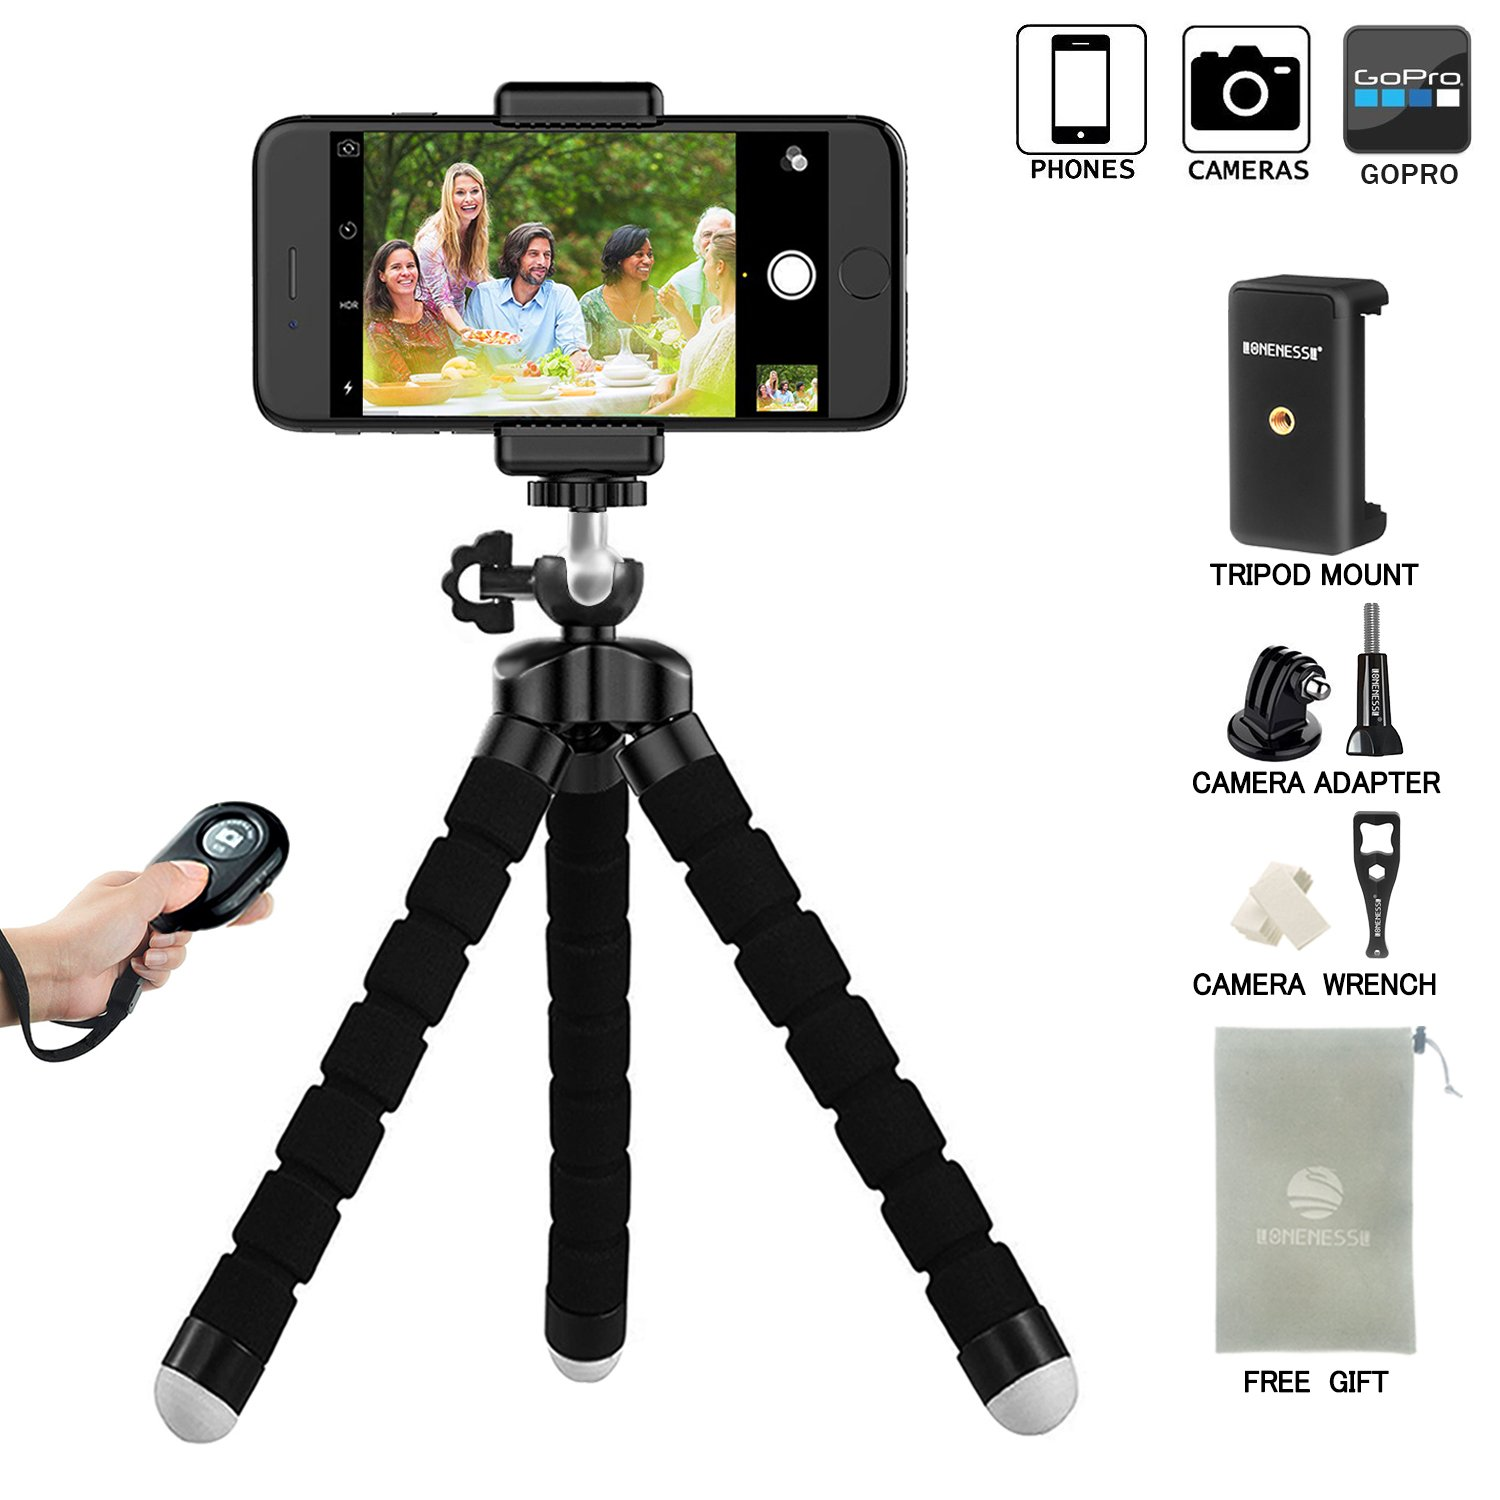 Large Flexible Tripod Stand Gorillapod for Iphone Samsung Android ...